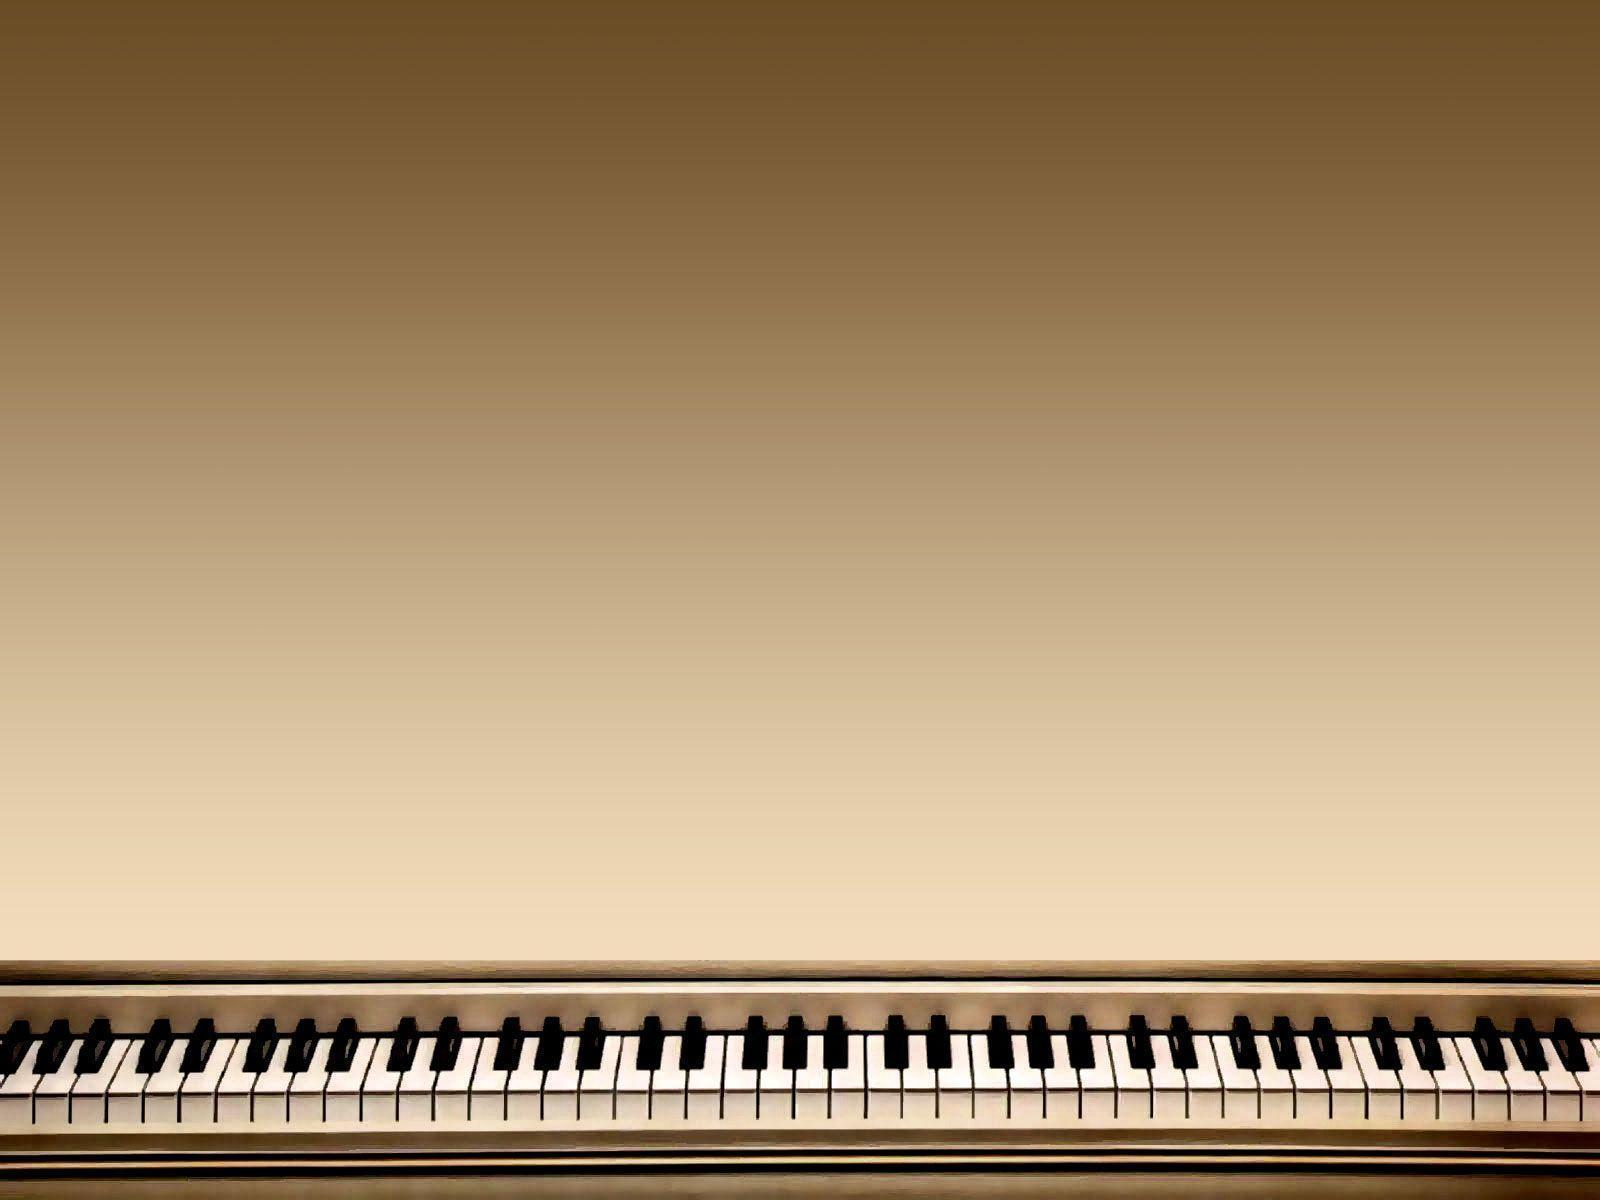 piano wallpaper ndash free - photo #27